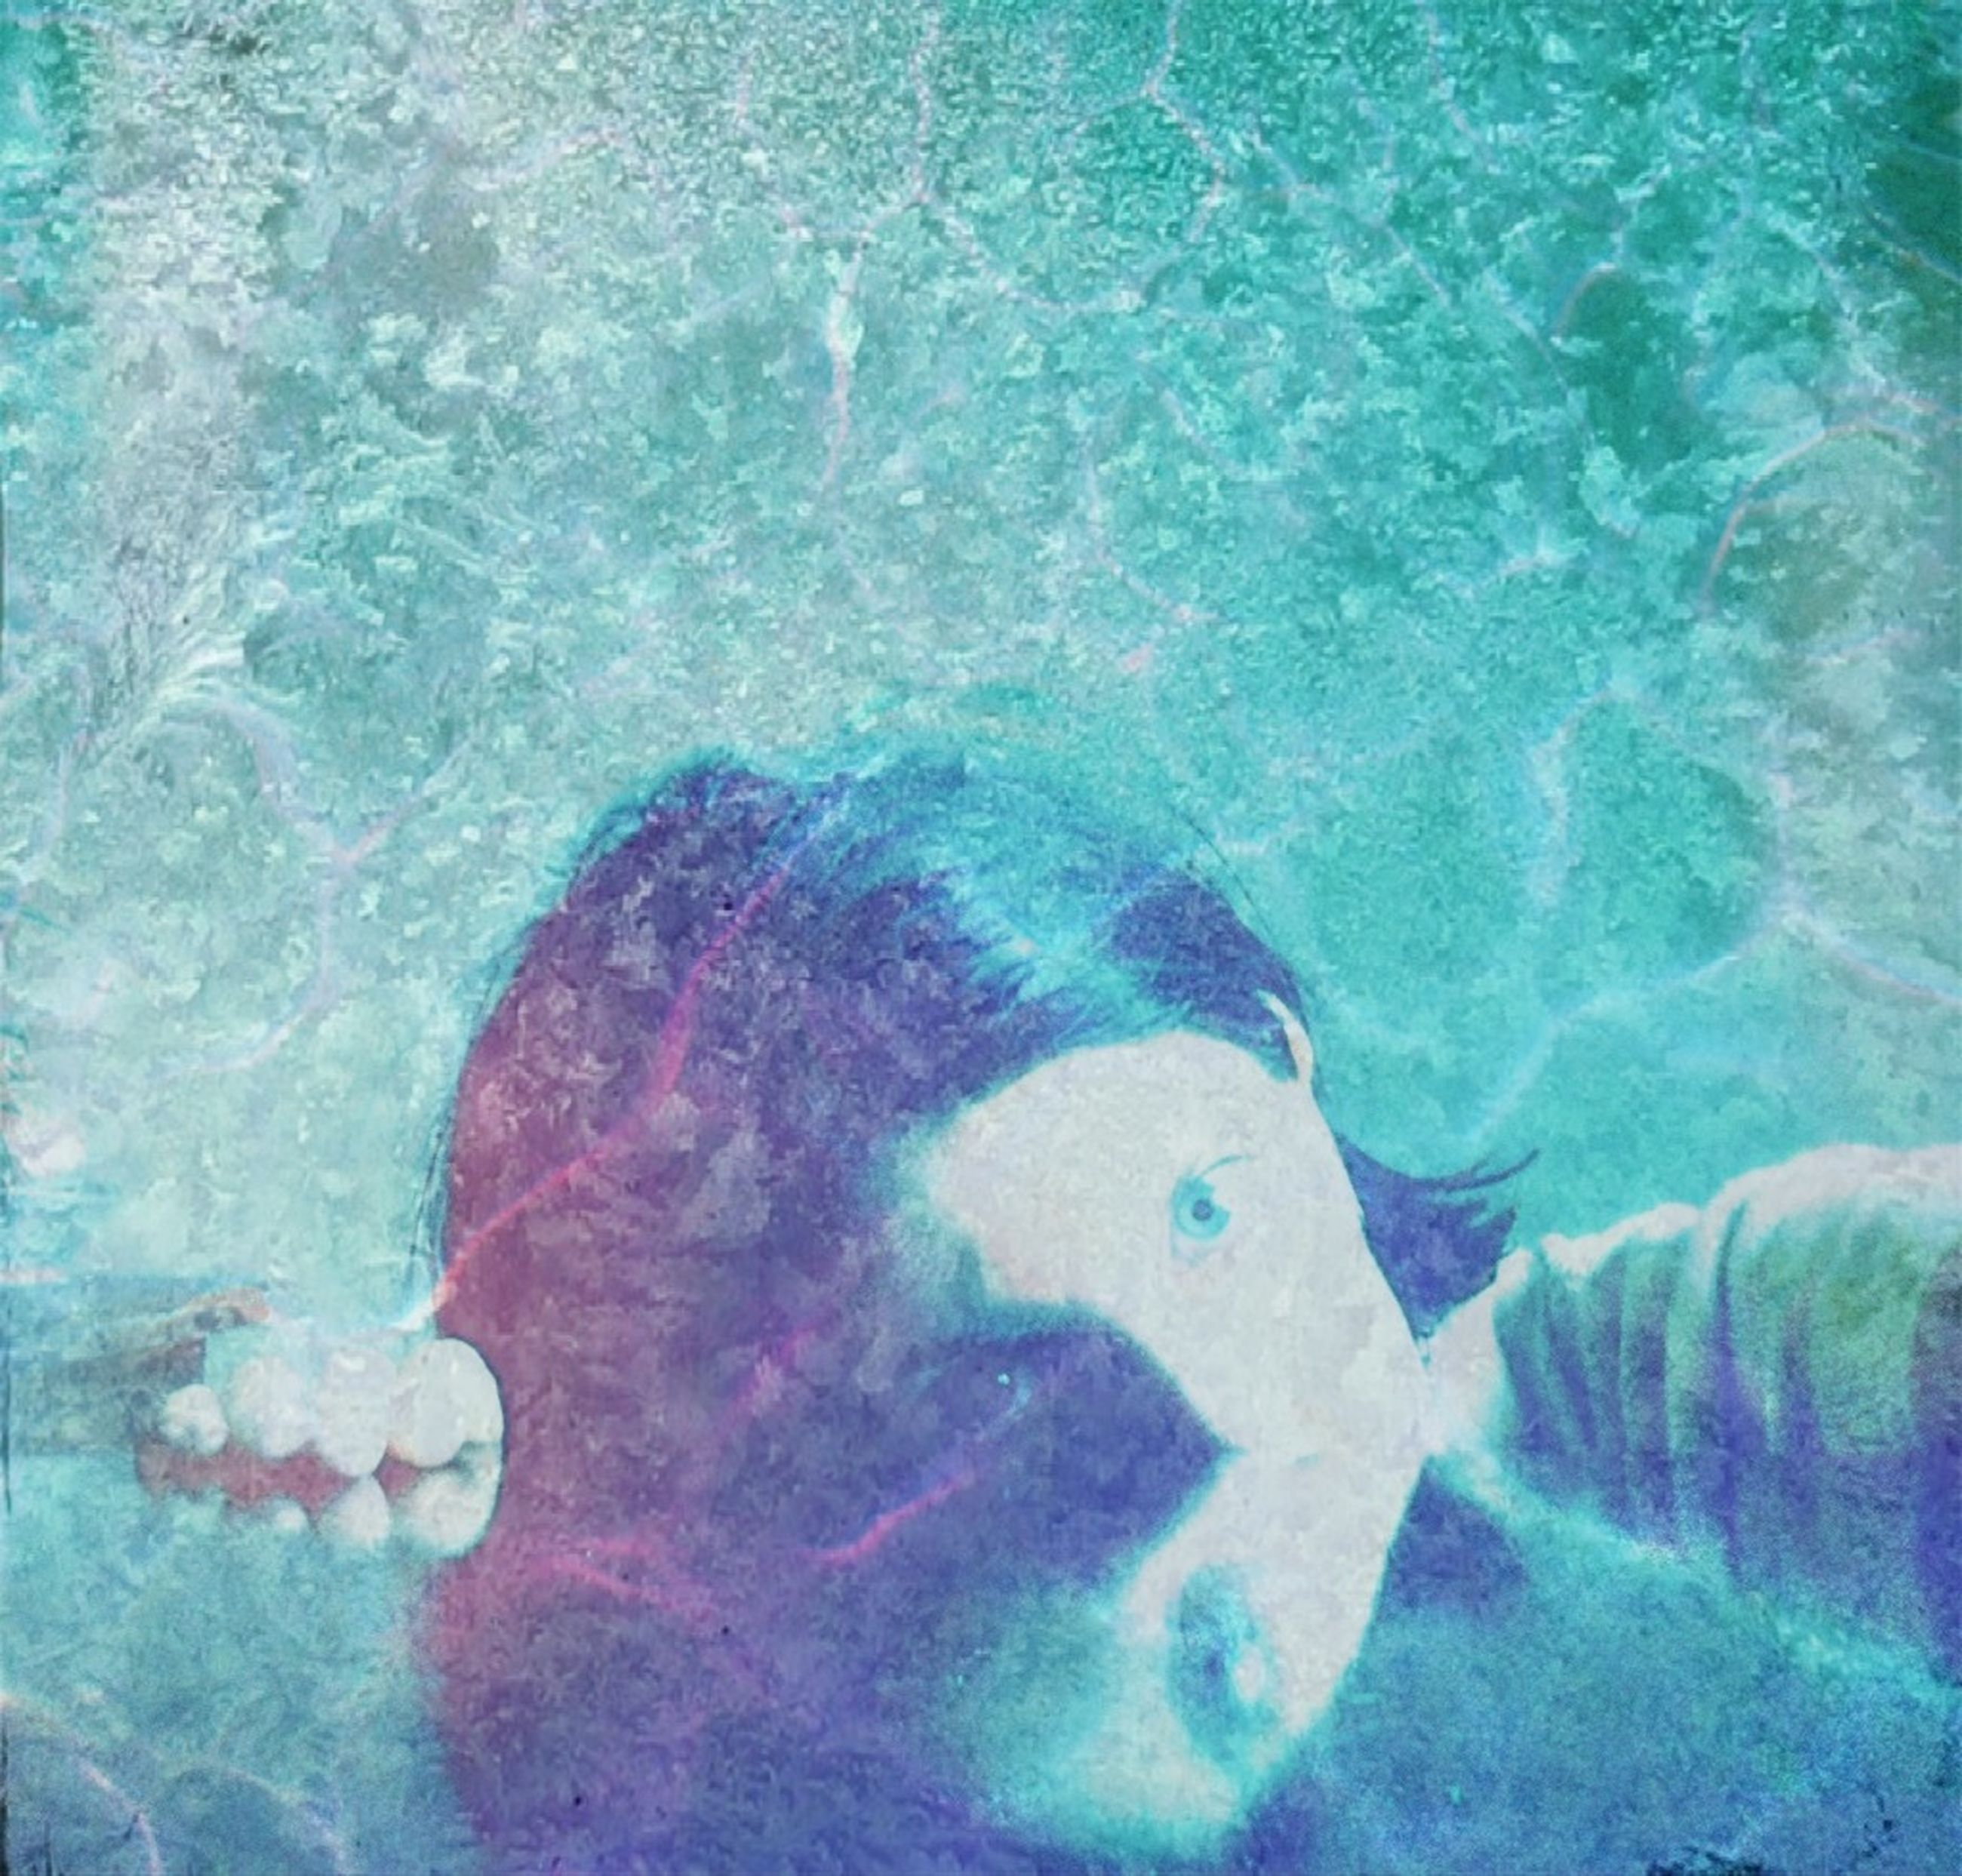 water, underwater, swimming, sea, undersea, sea life, high angle view, blue, fish, animal themes, nature, animals in the wild, turquoise colored, transparent, beauty in nature, rock - object, wildlife, swimming pool, waterfront, vacations